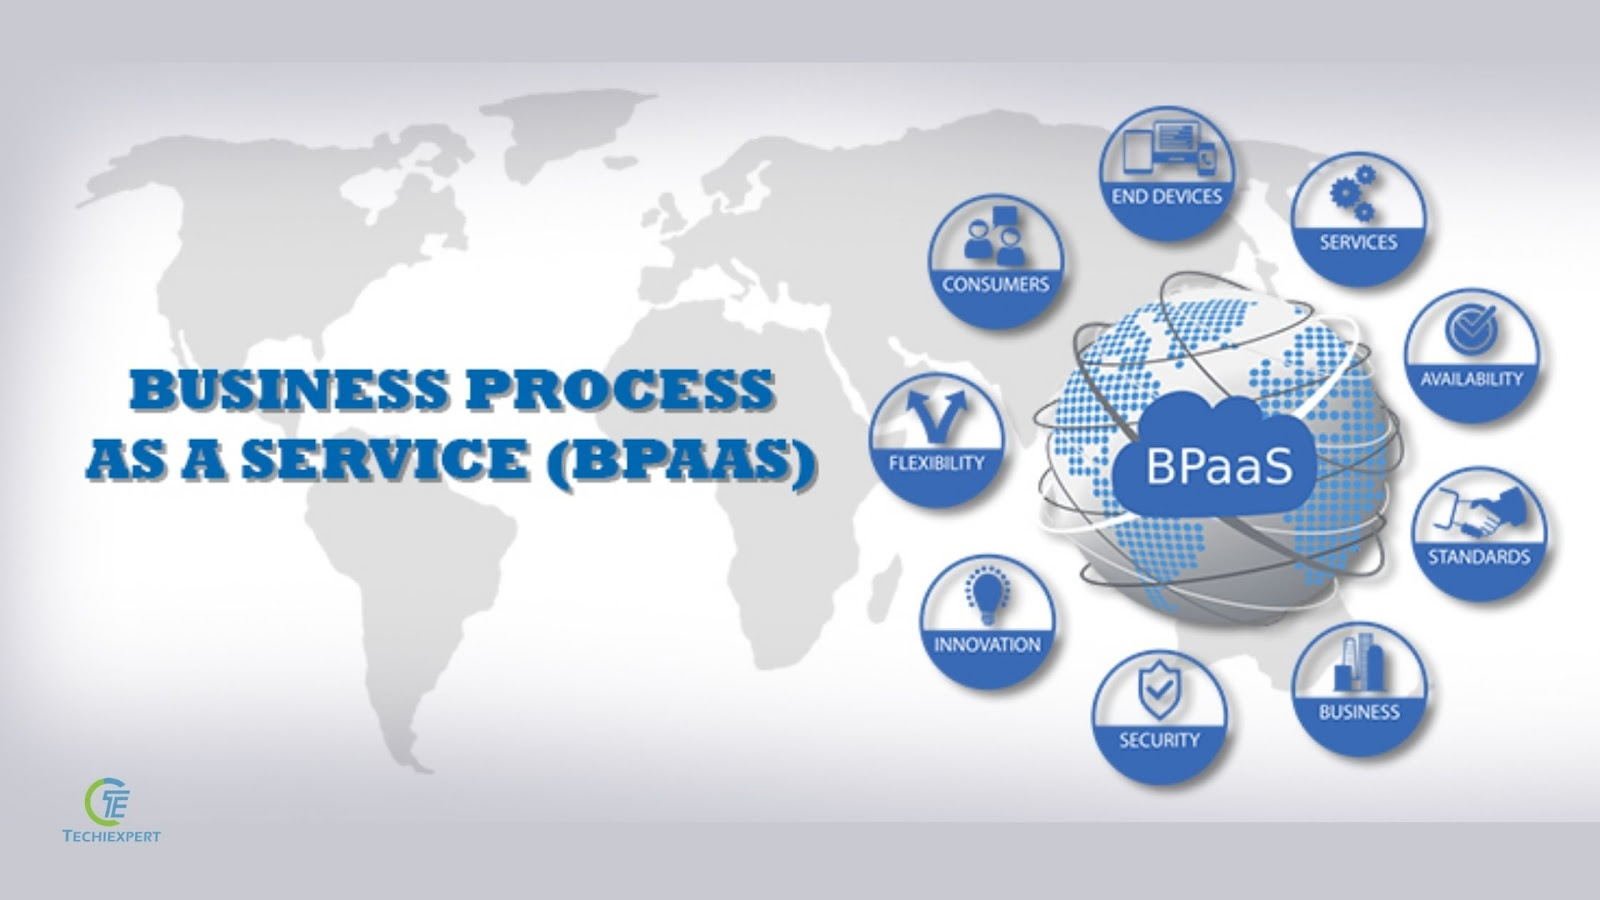 BPaaS: Business Process as a Service